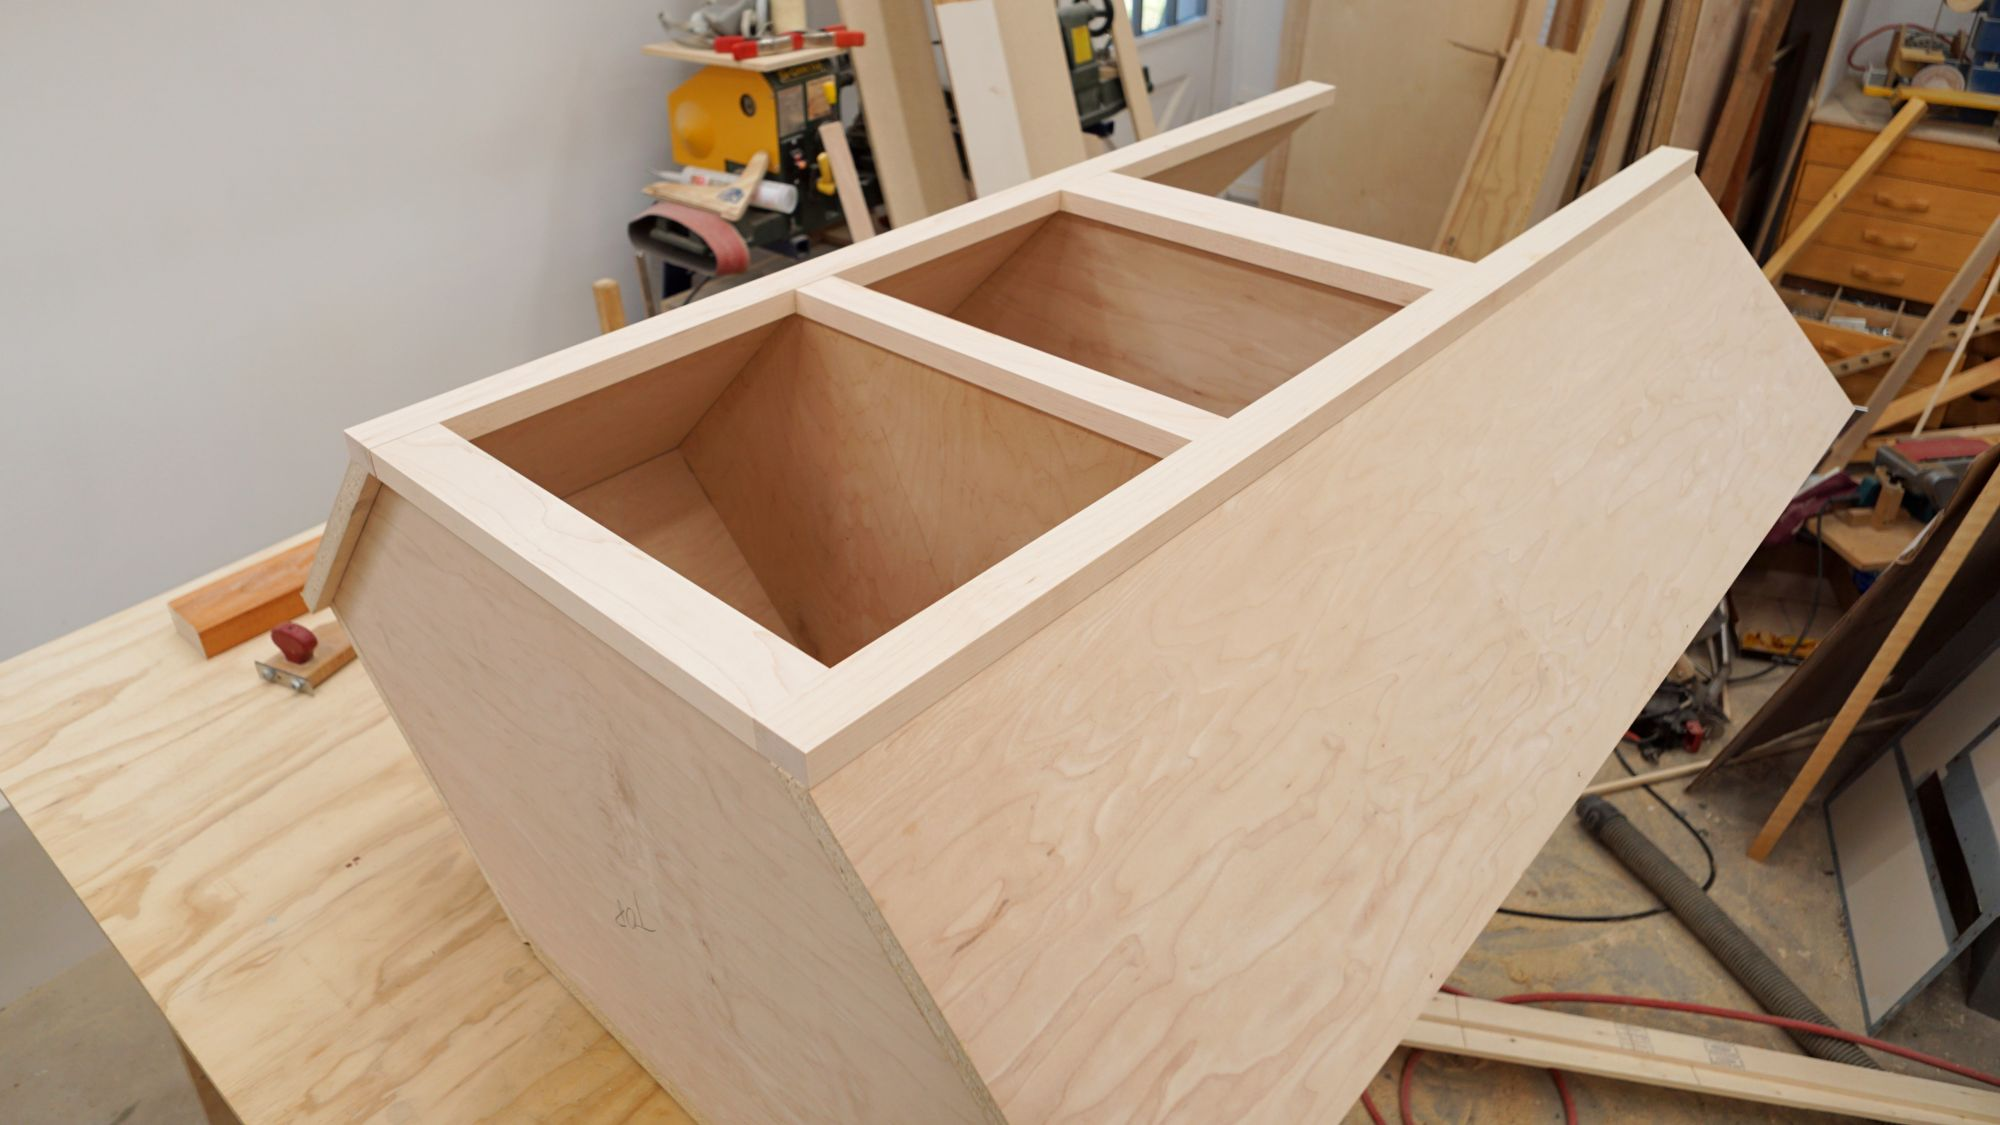 Building A Corner Cabinet For The Kitchen Ibuildit Ca